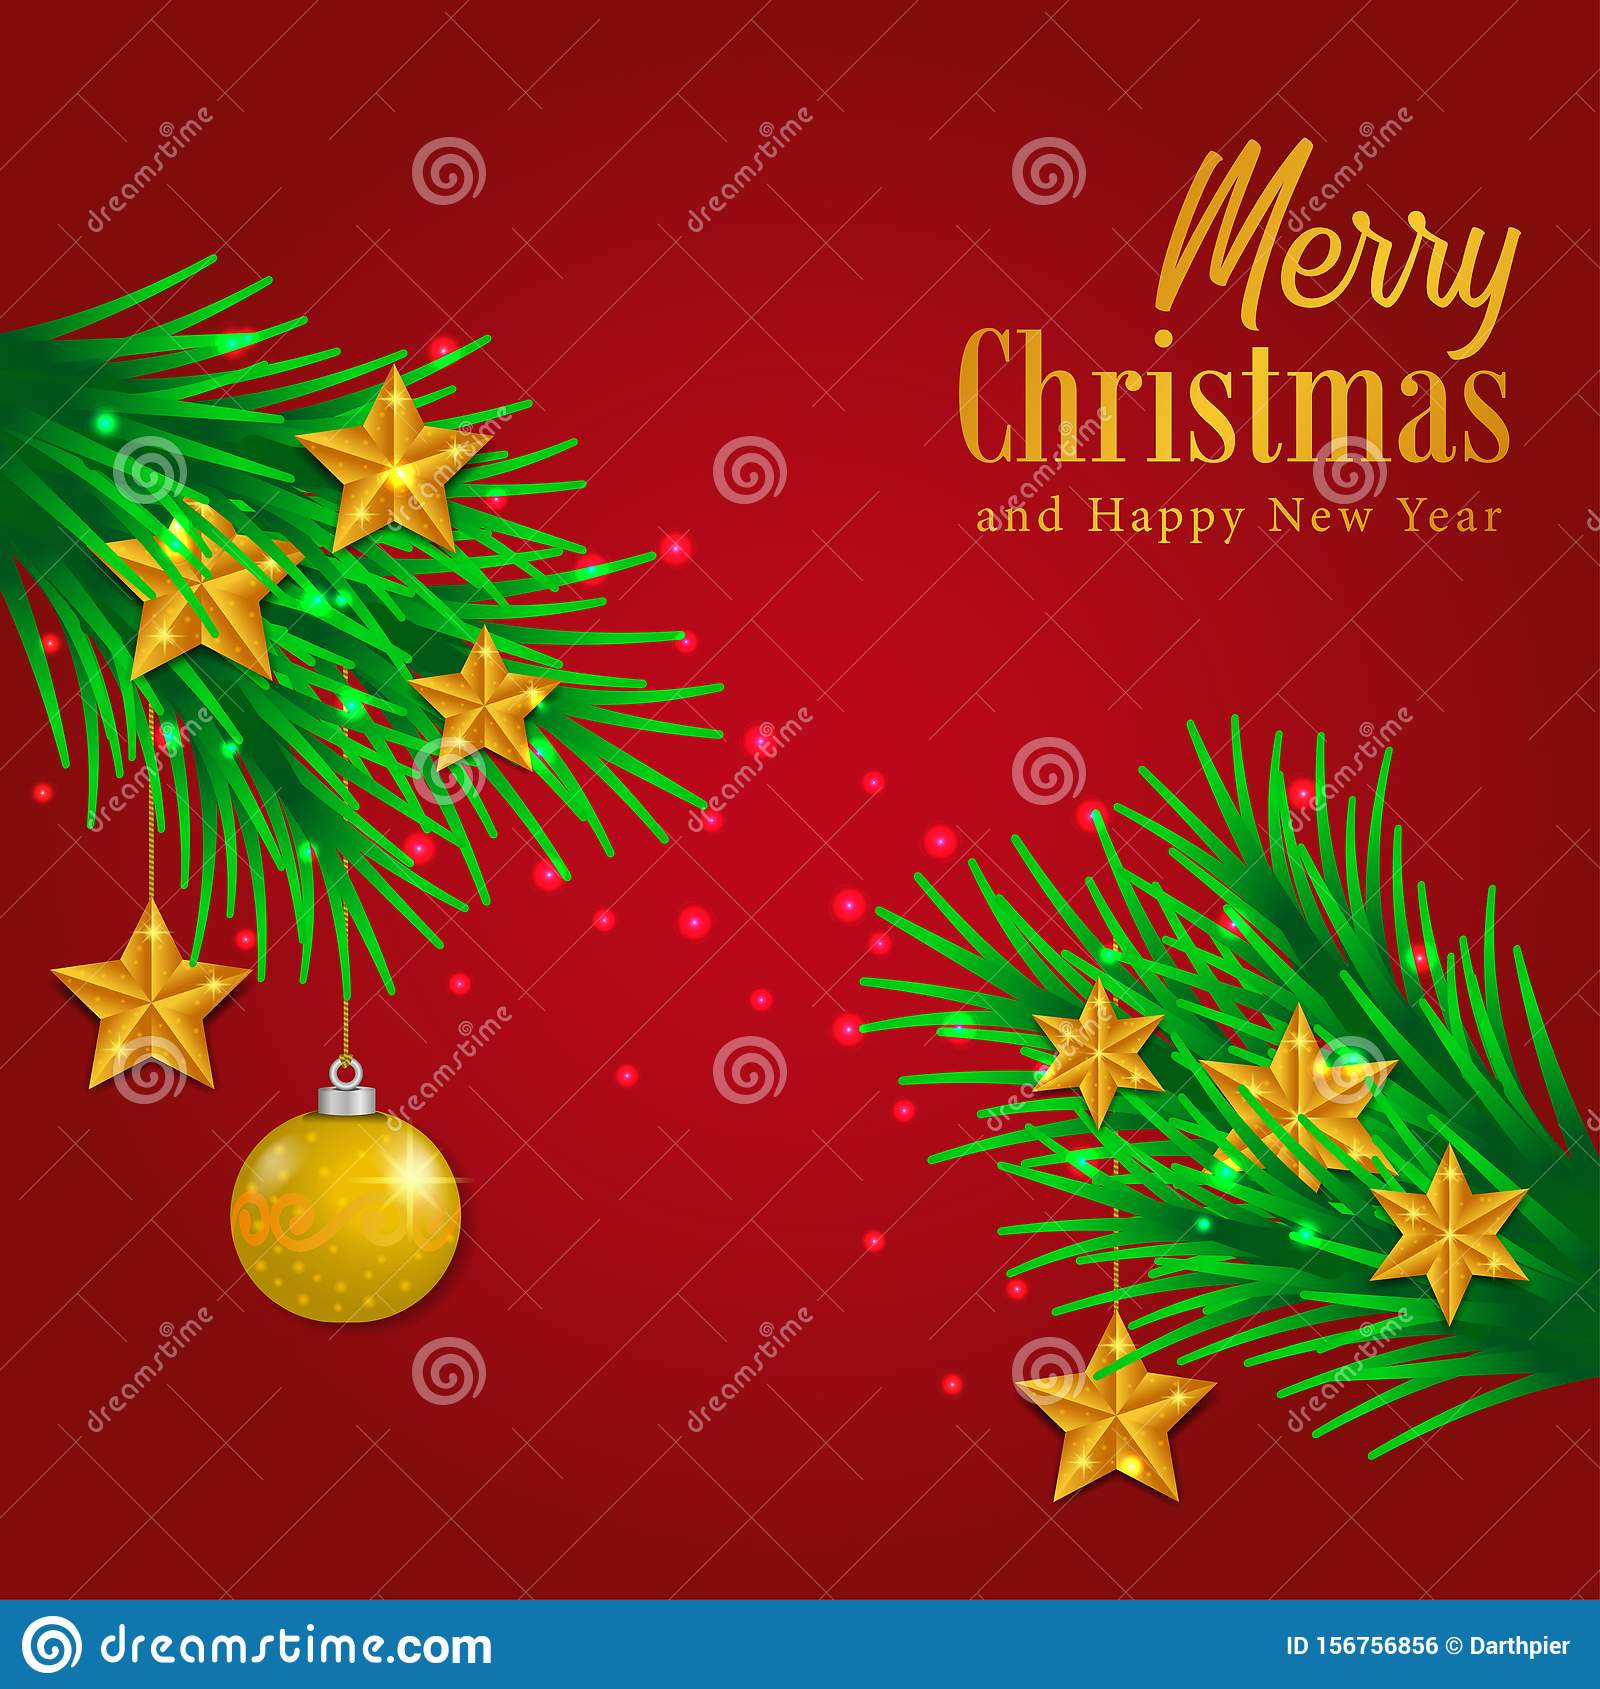 Merry Christmas And Happy New Year Greeting Card Template ...